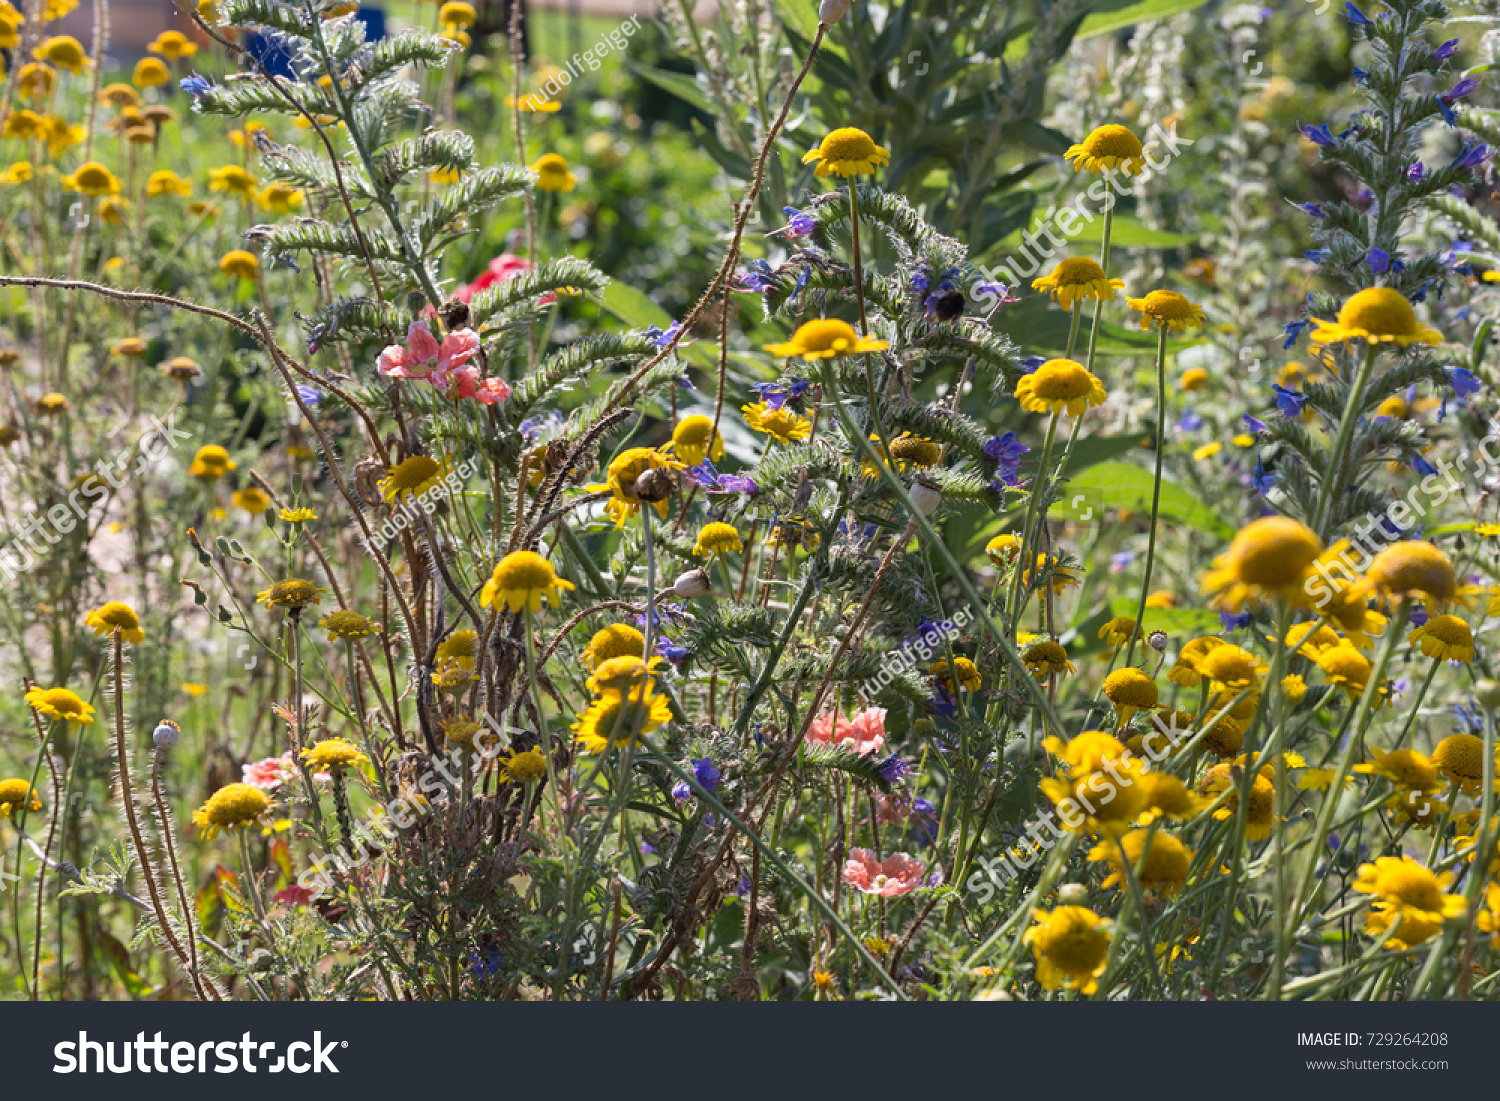 On very sunny day july south stock photo 729264208 shutterstock on a very sunny day in july in south germany you see details and colors of izmirmasajfo Choice Image